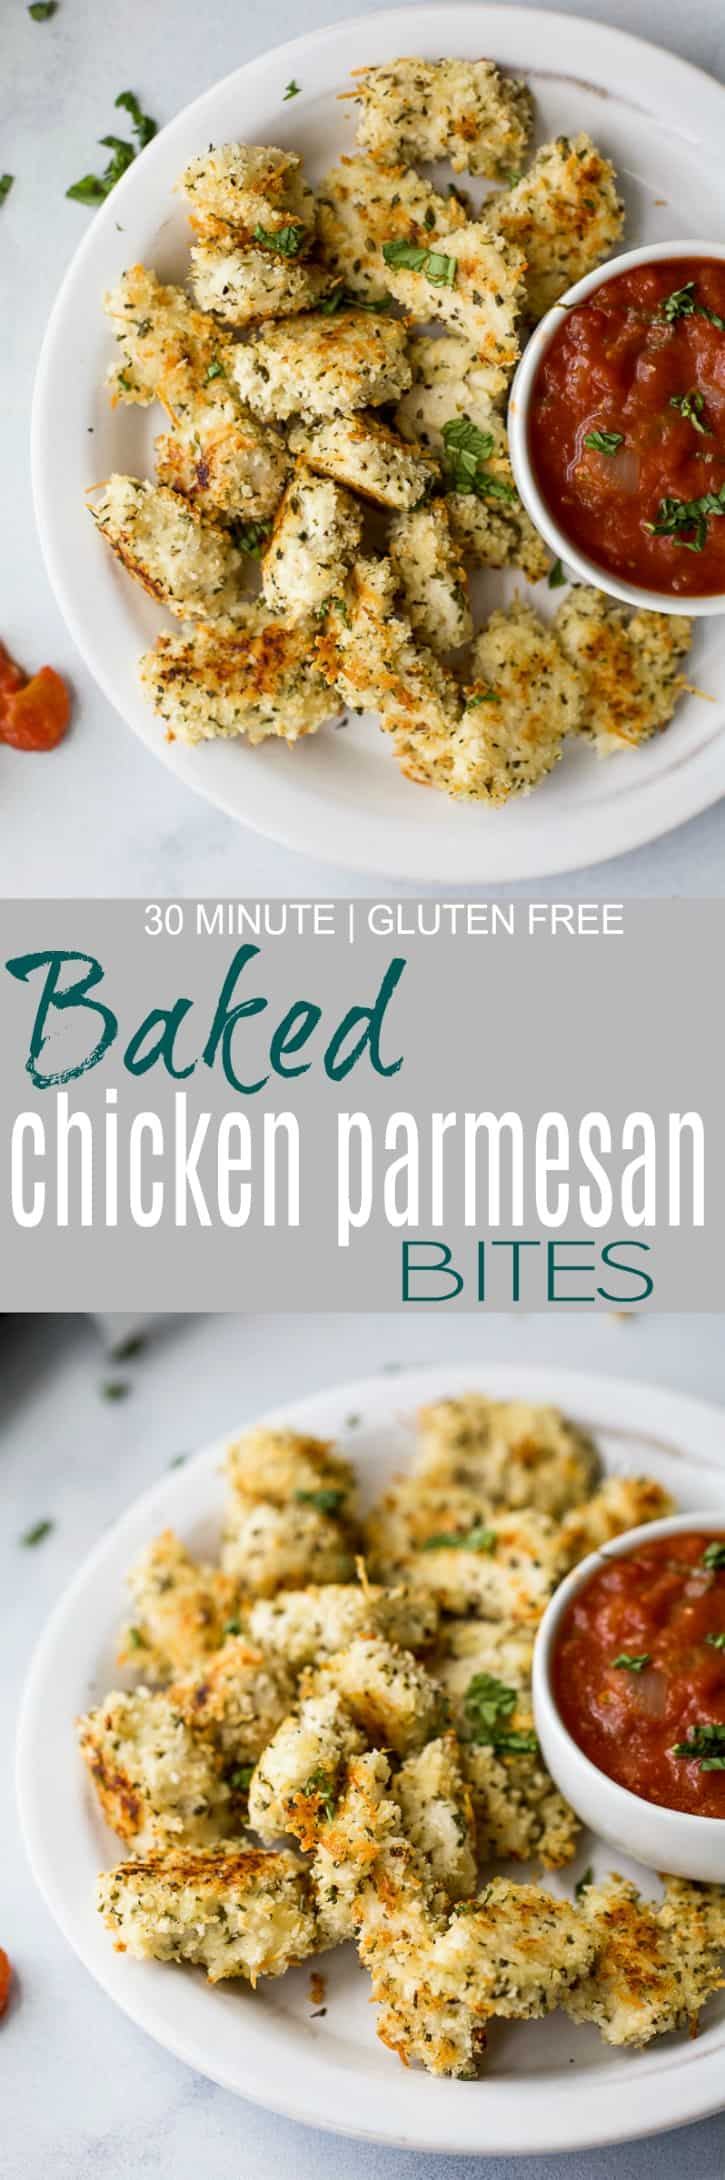 These fun Gluten Free Baked Chicken Parmesan Bites served with a homemade marinara sauce make the perfect kids school lunch, game day appetizer or quick dinner recipe! Easy, light and full of flavor - these chicken bites are a must make! #ad